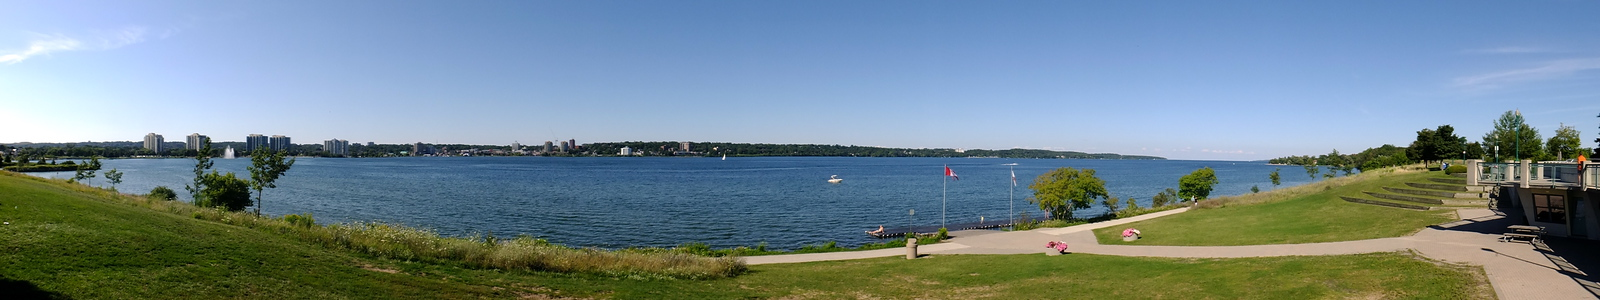 2013 Aug, Barrie and Penetanguishene